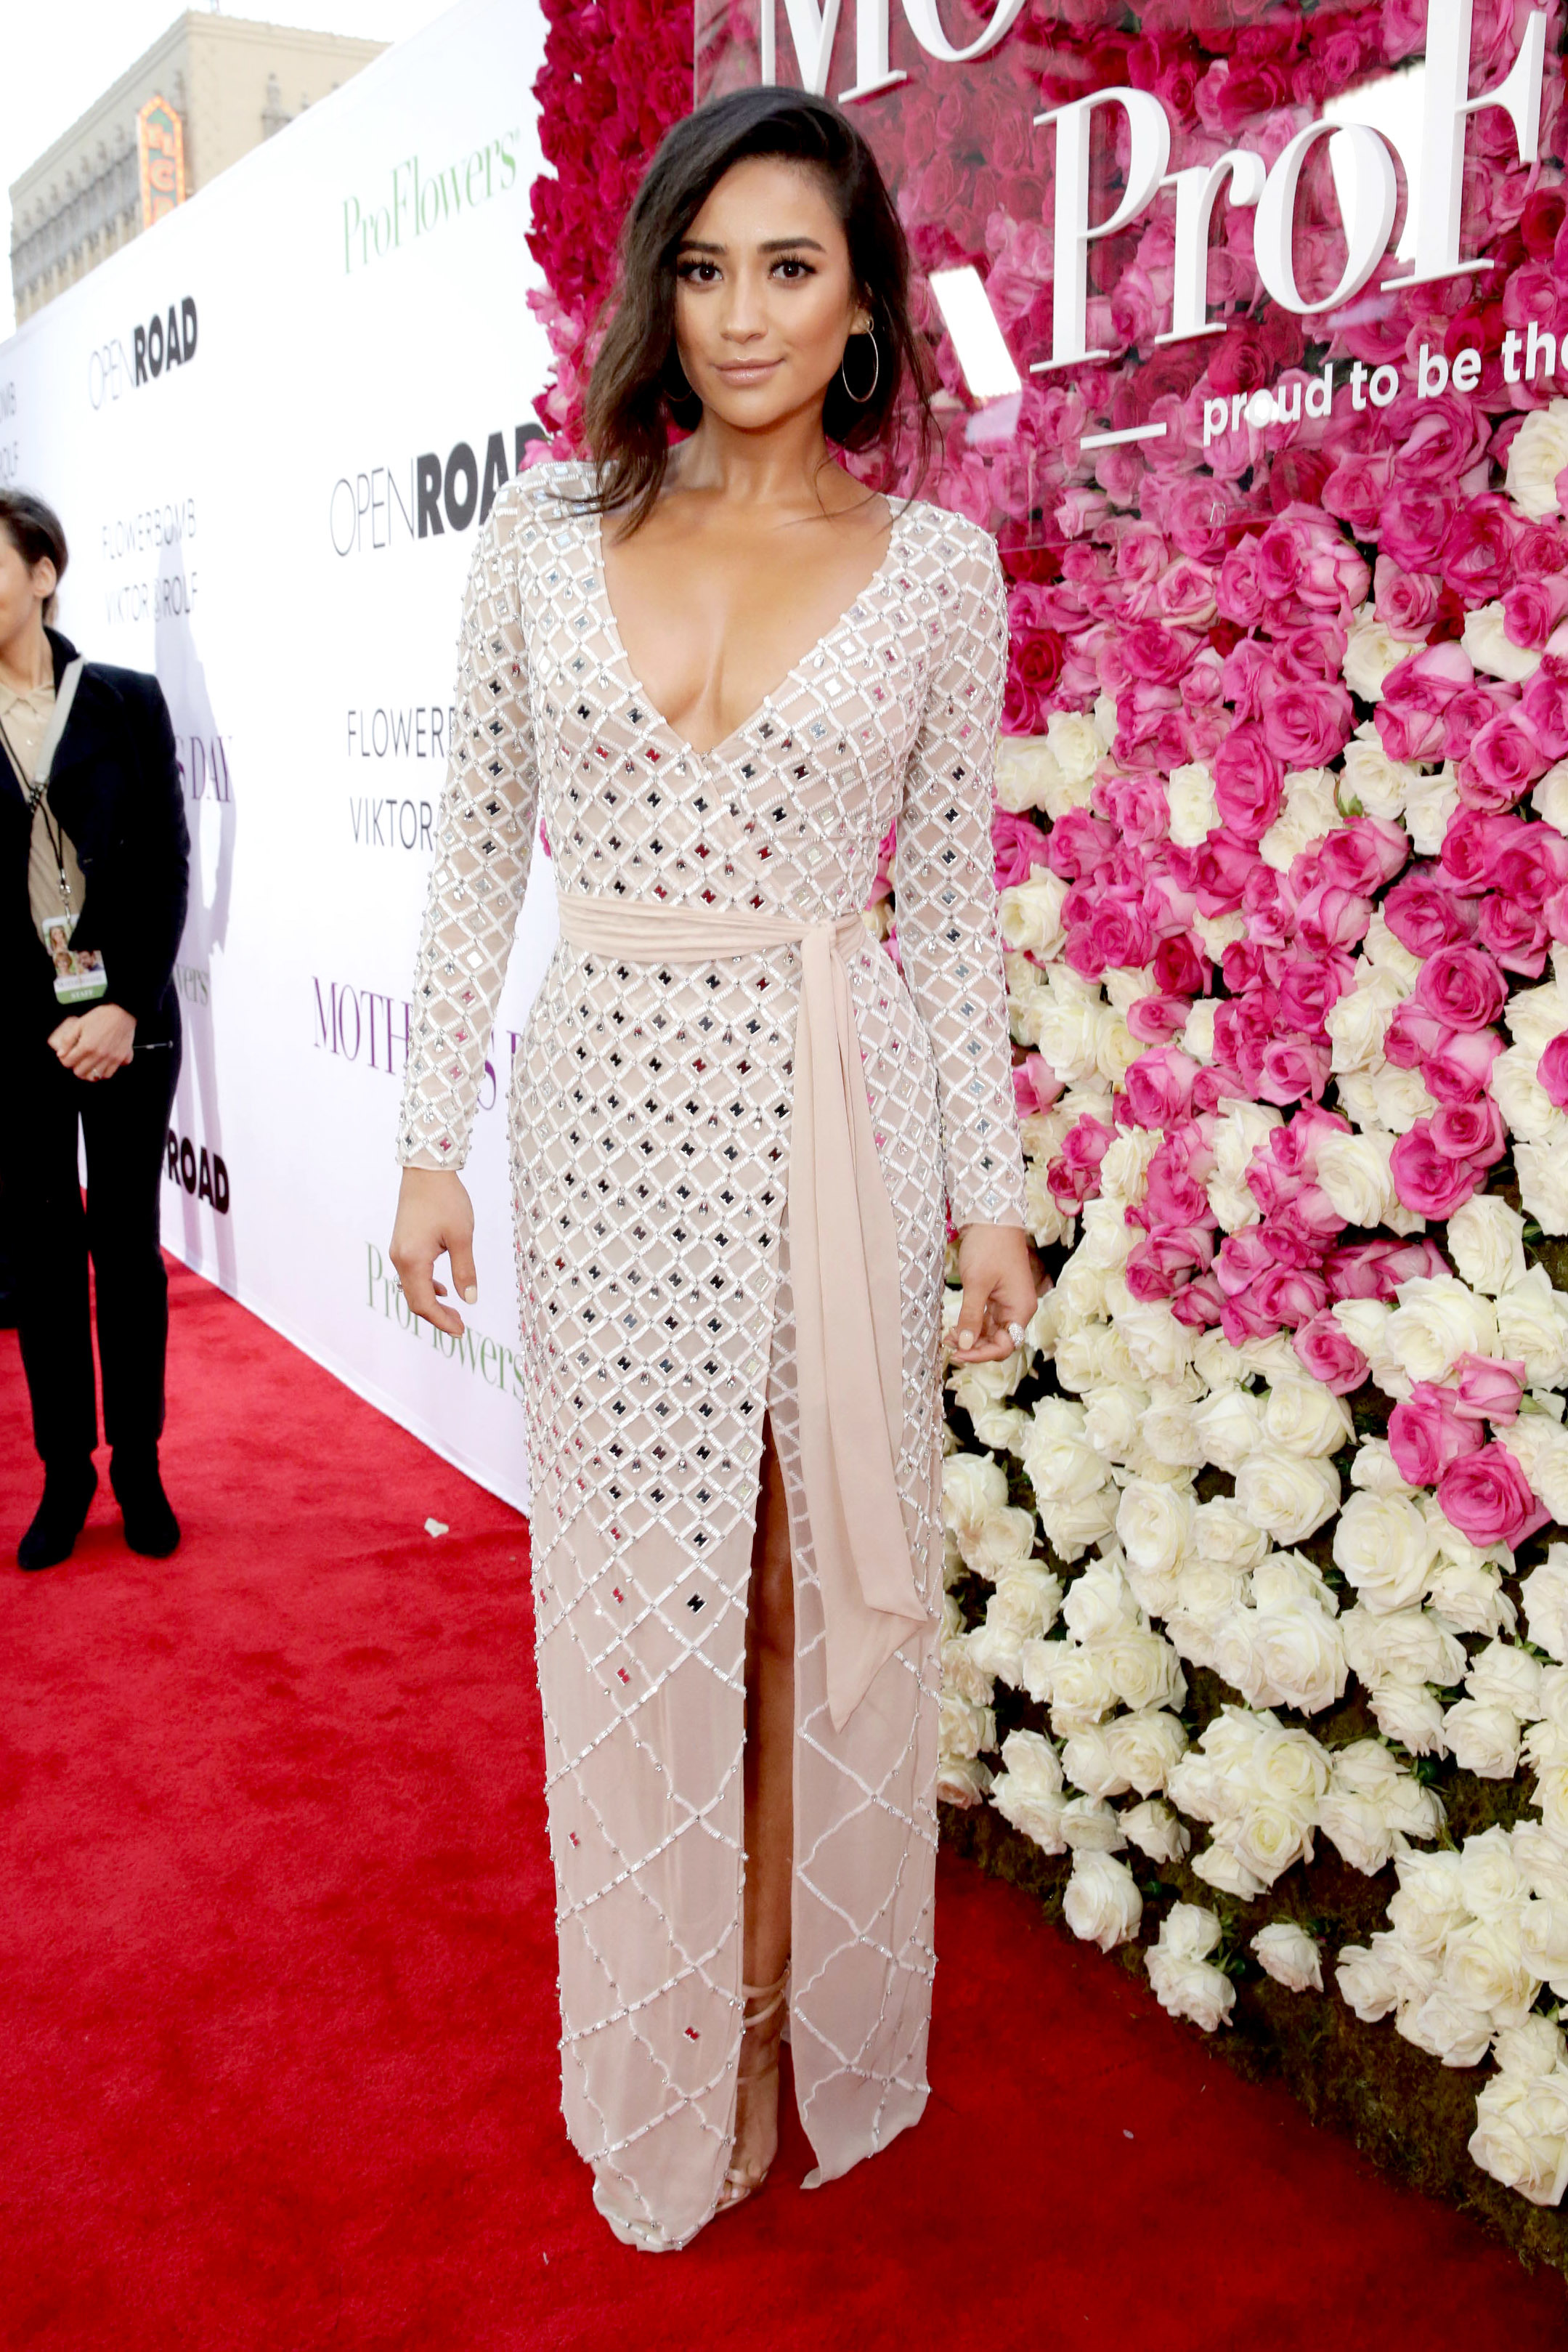 Shay Mitchell on sexuality: 'I'm never going to label myself'